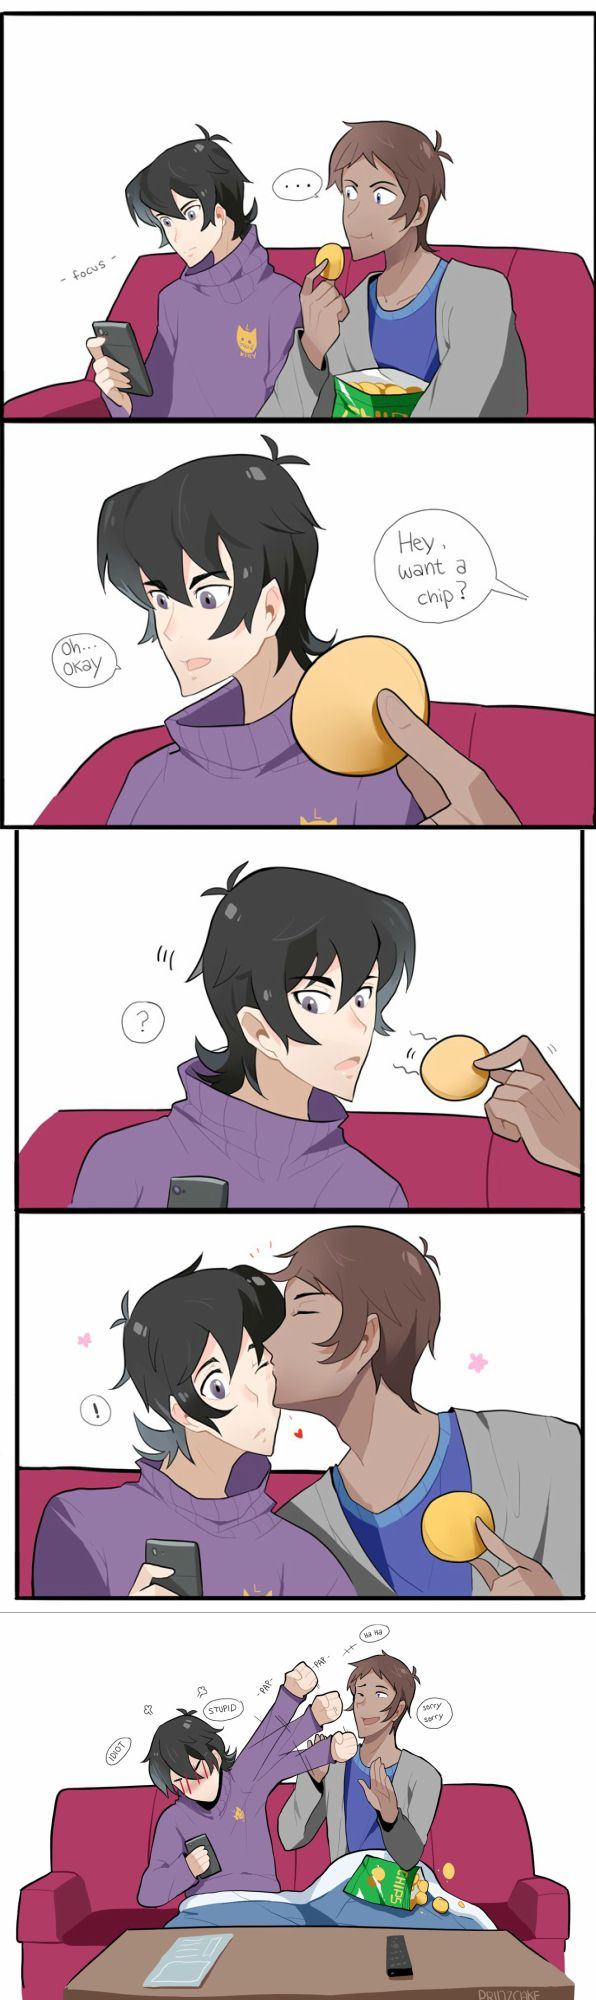 Keith is weak to Lance's romantic gestures